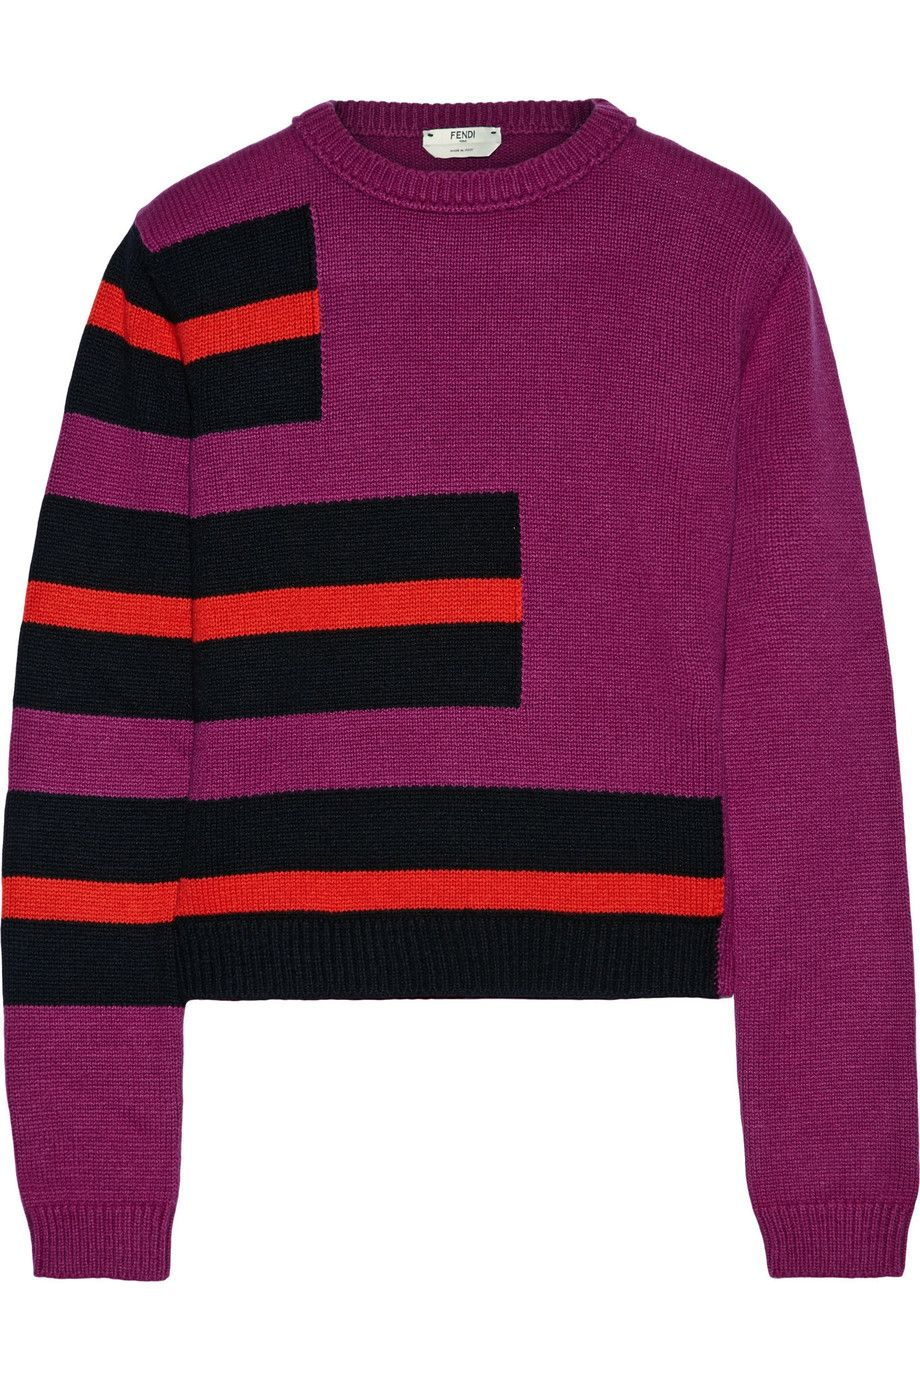 FENDI Striped Cashmere Sweater. #fendi #cloth #sweater | Fendi ...